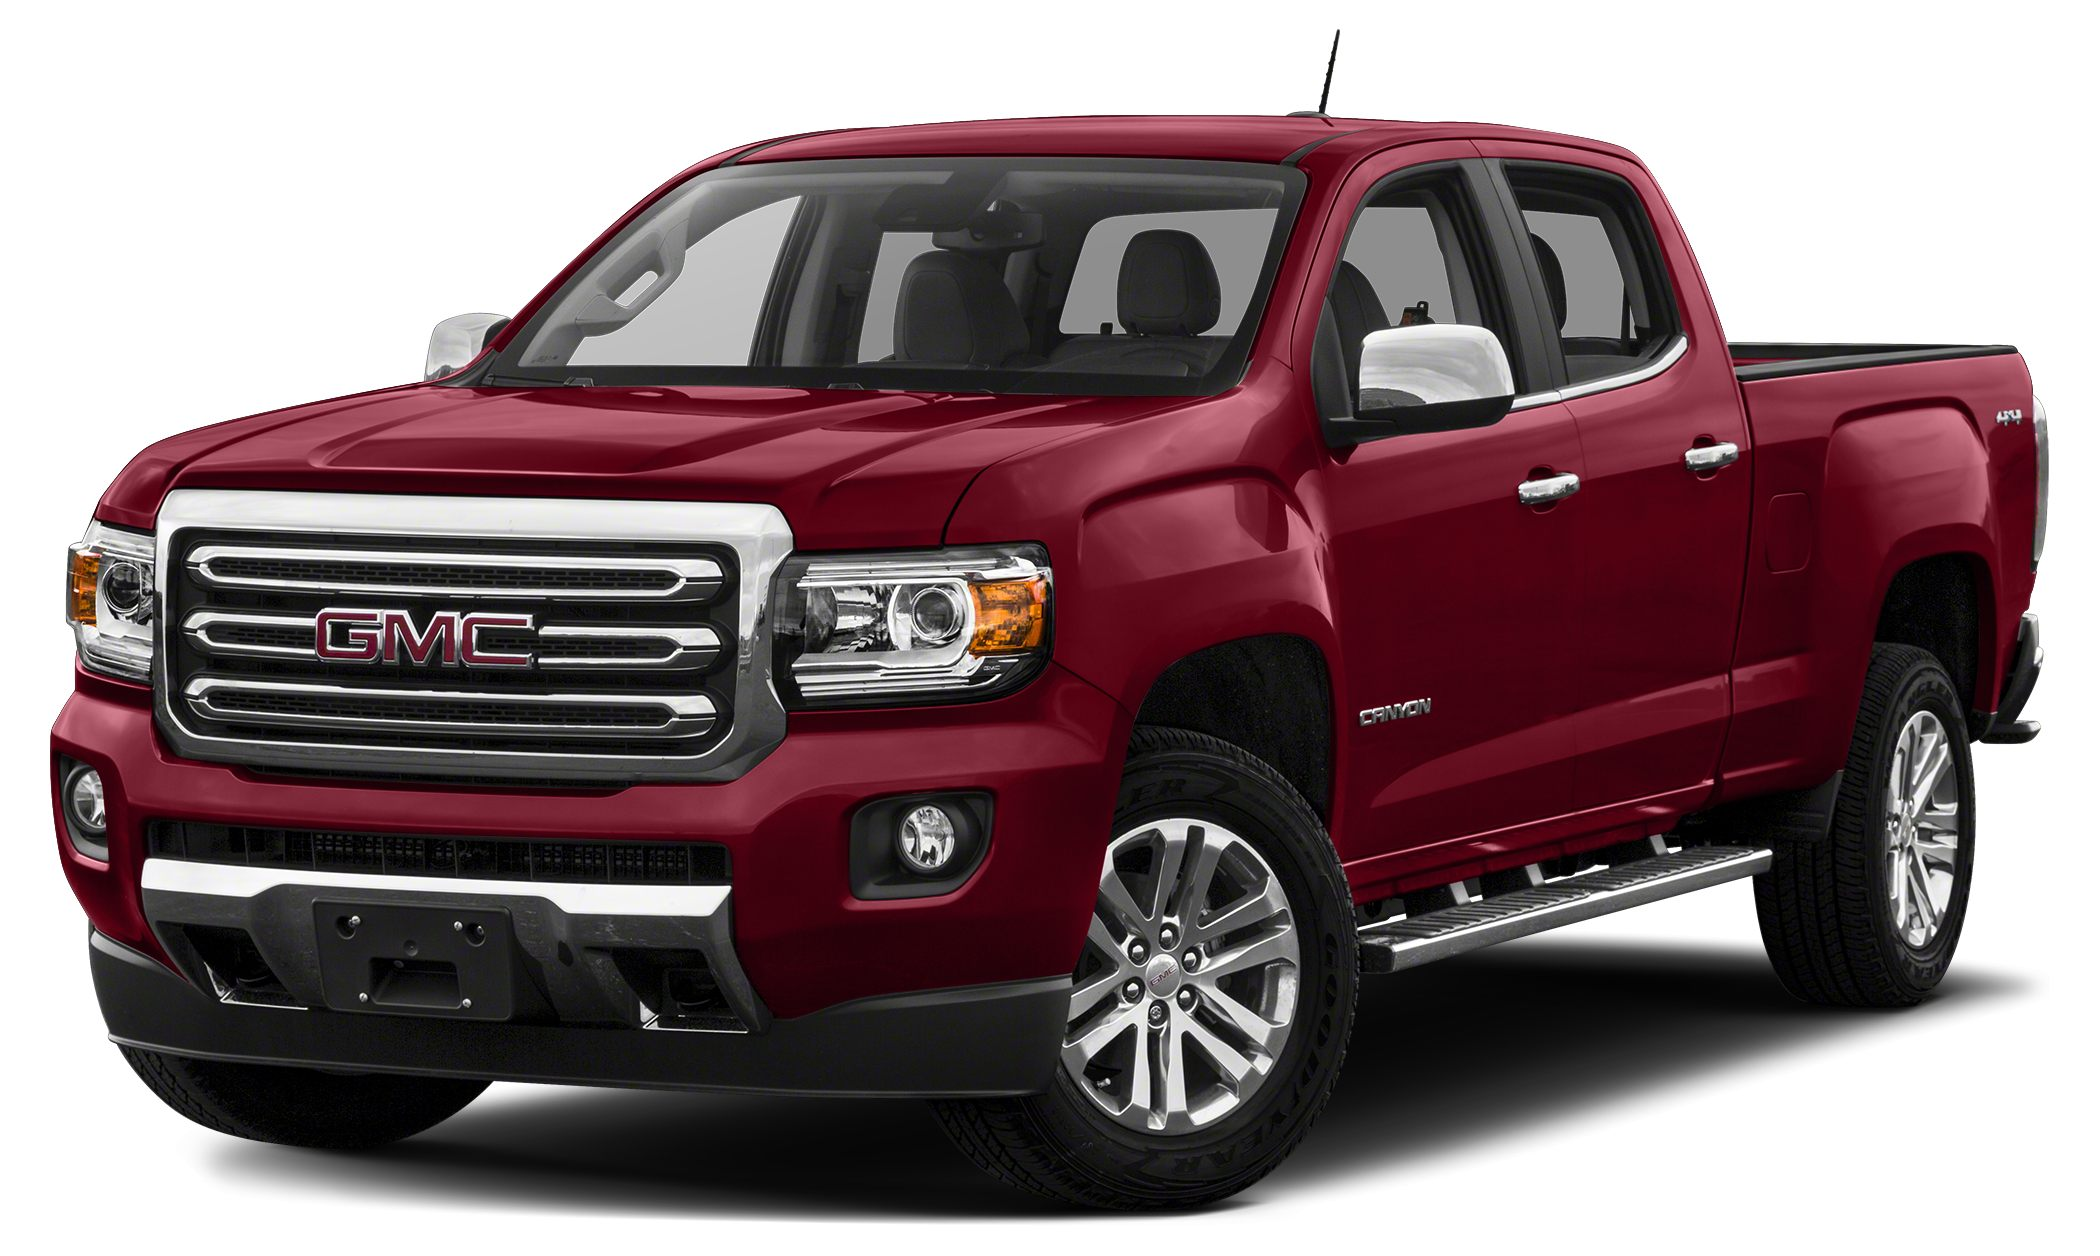 2016 GMC Canyon SLT The GMC Canyon will redefine the small truck category with segment-leading fea